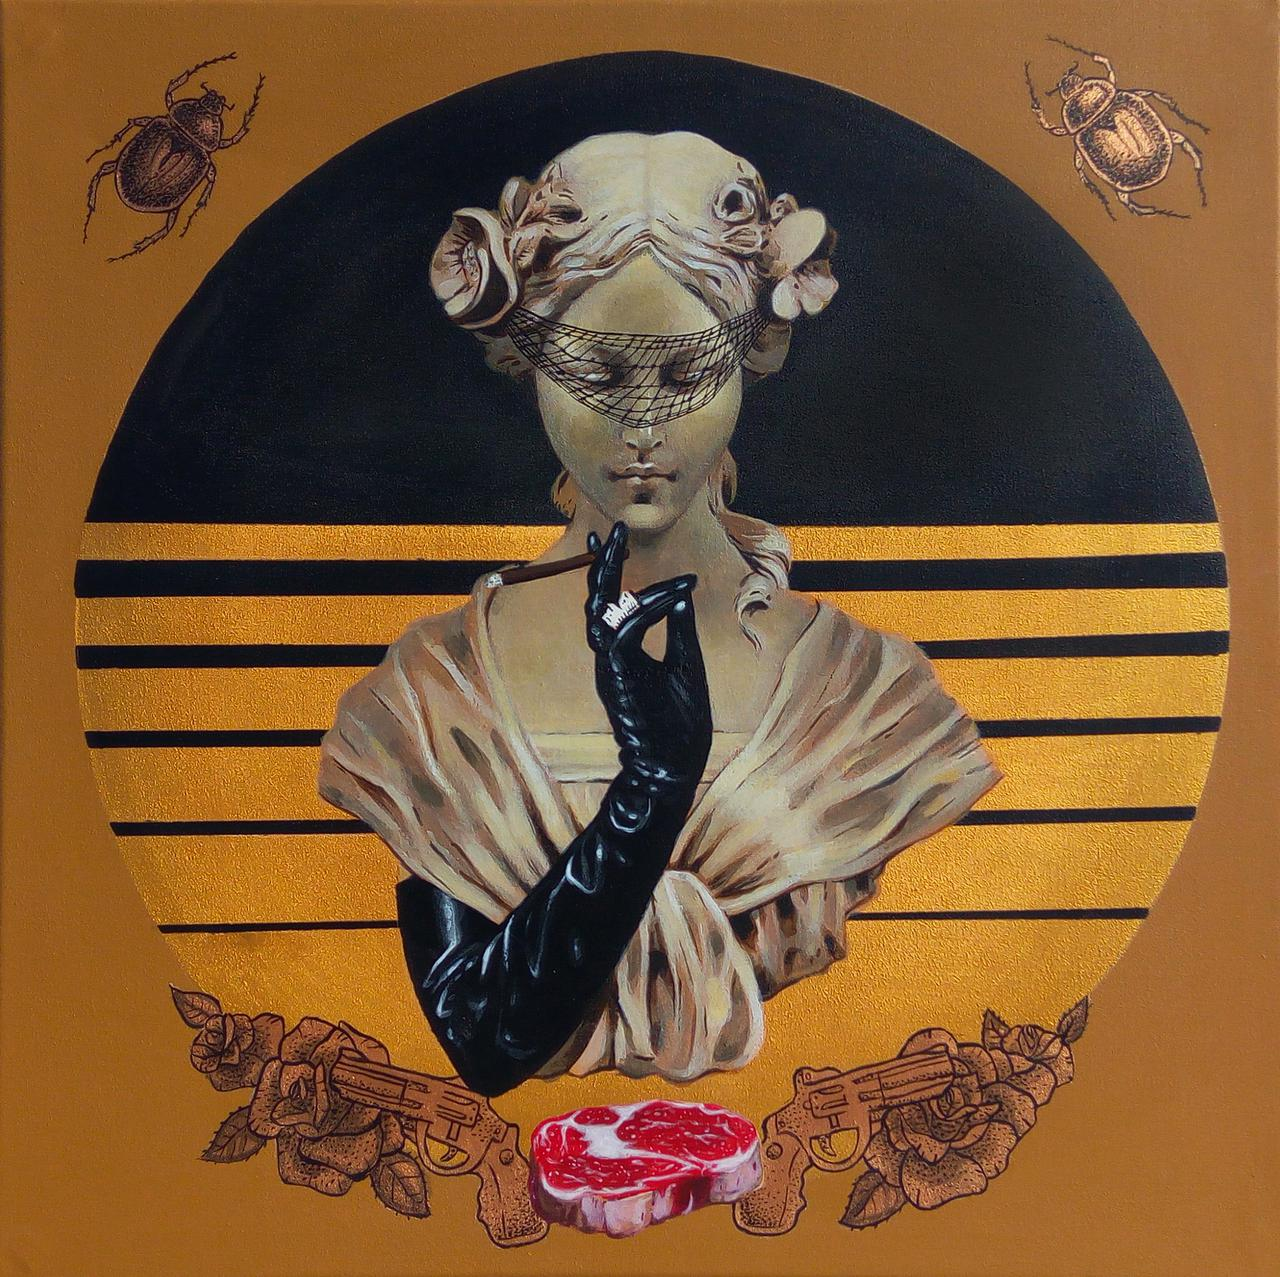 The Widow, acrylic on canvas, 50 x 50 cm